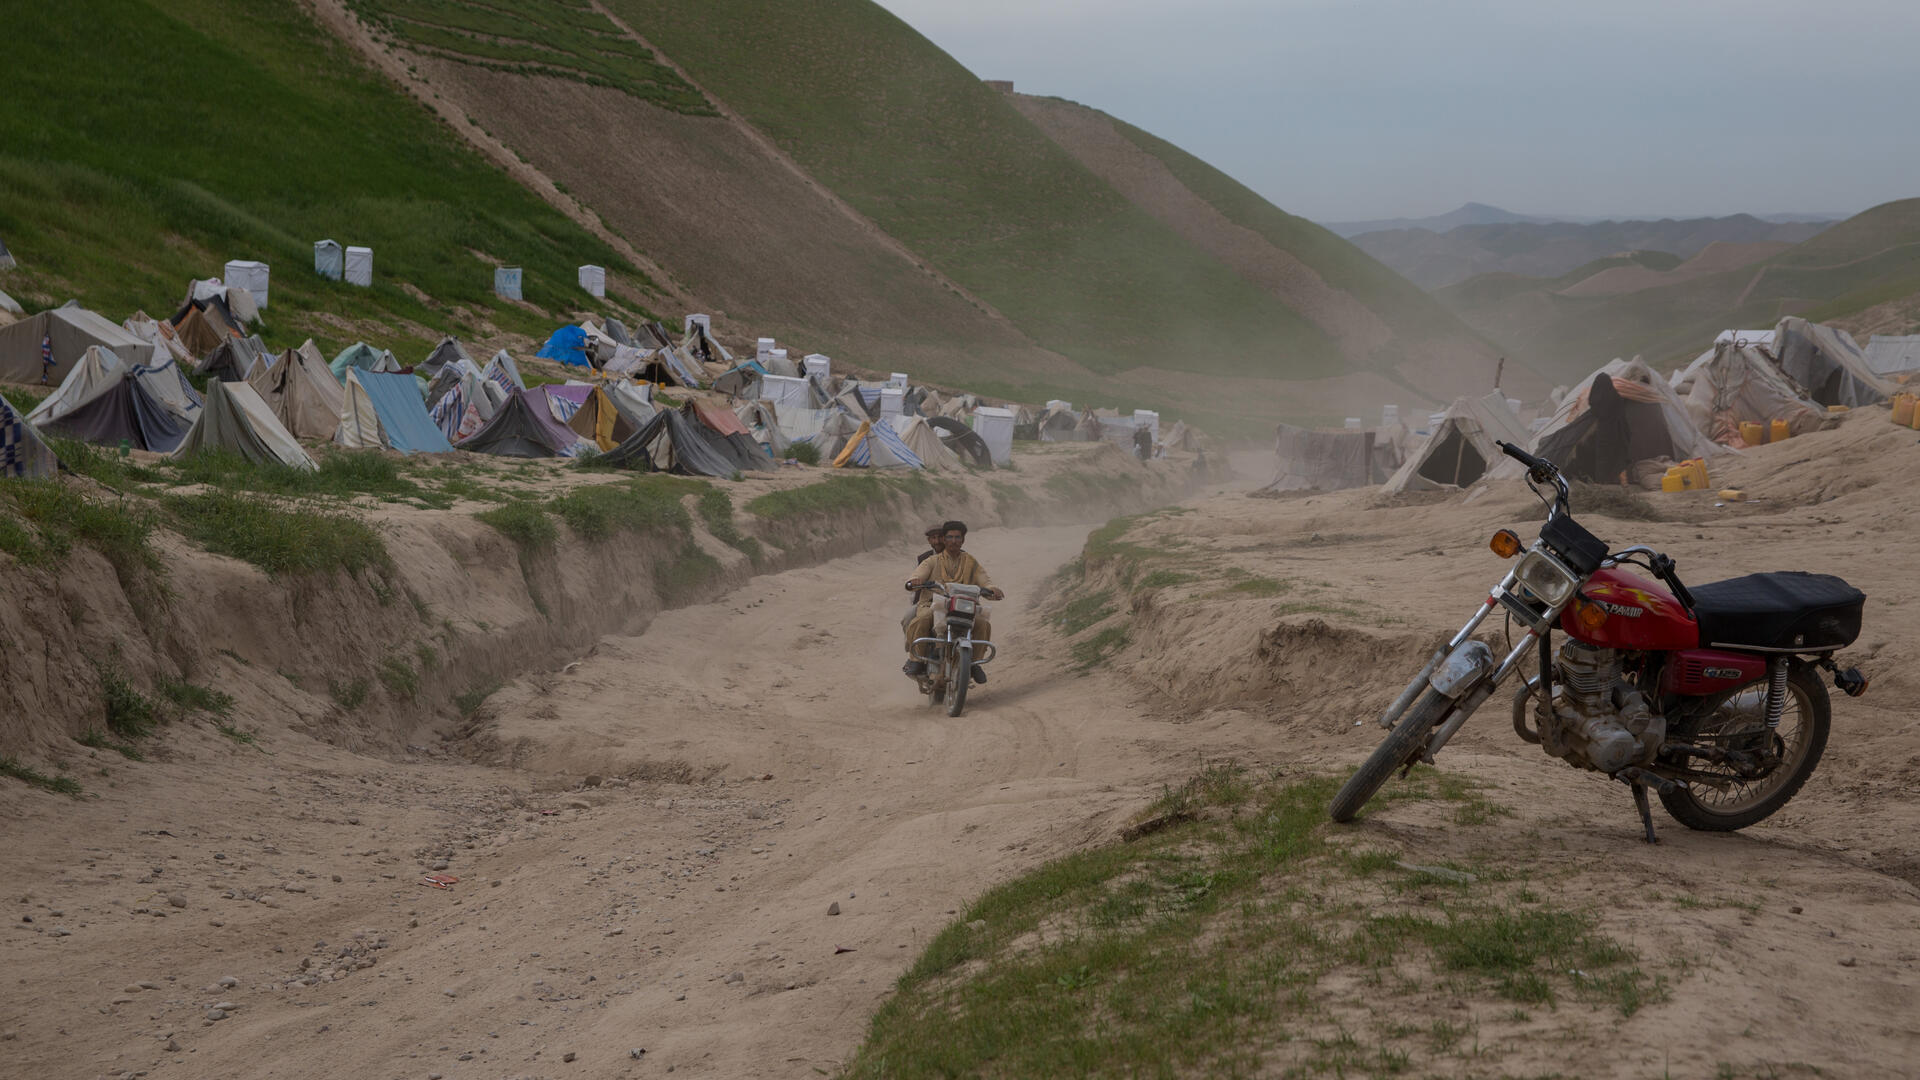 A camp for drought displaced people in Afghanistan. there is a motorcycle in the foreground as well as two men on a motorcycle on the road, and tents in the background on a mountainous landscape.